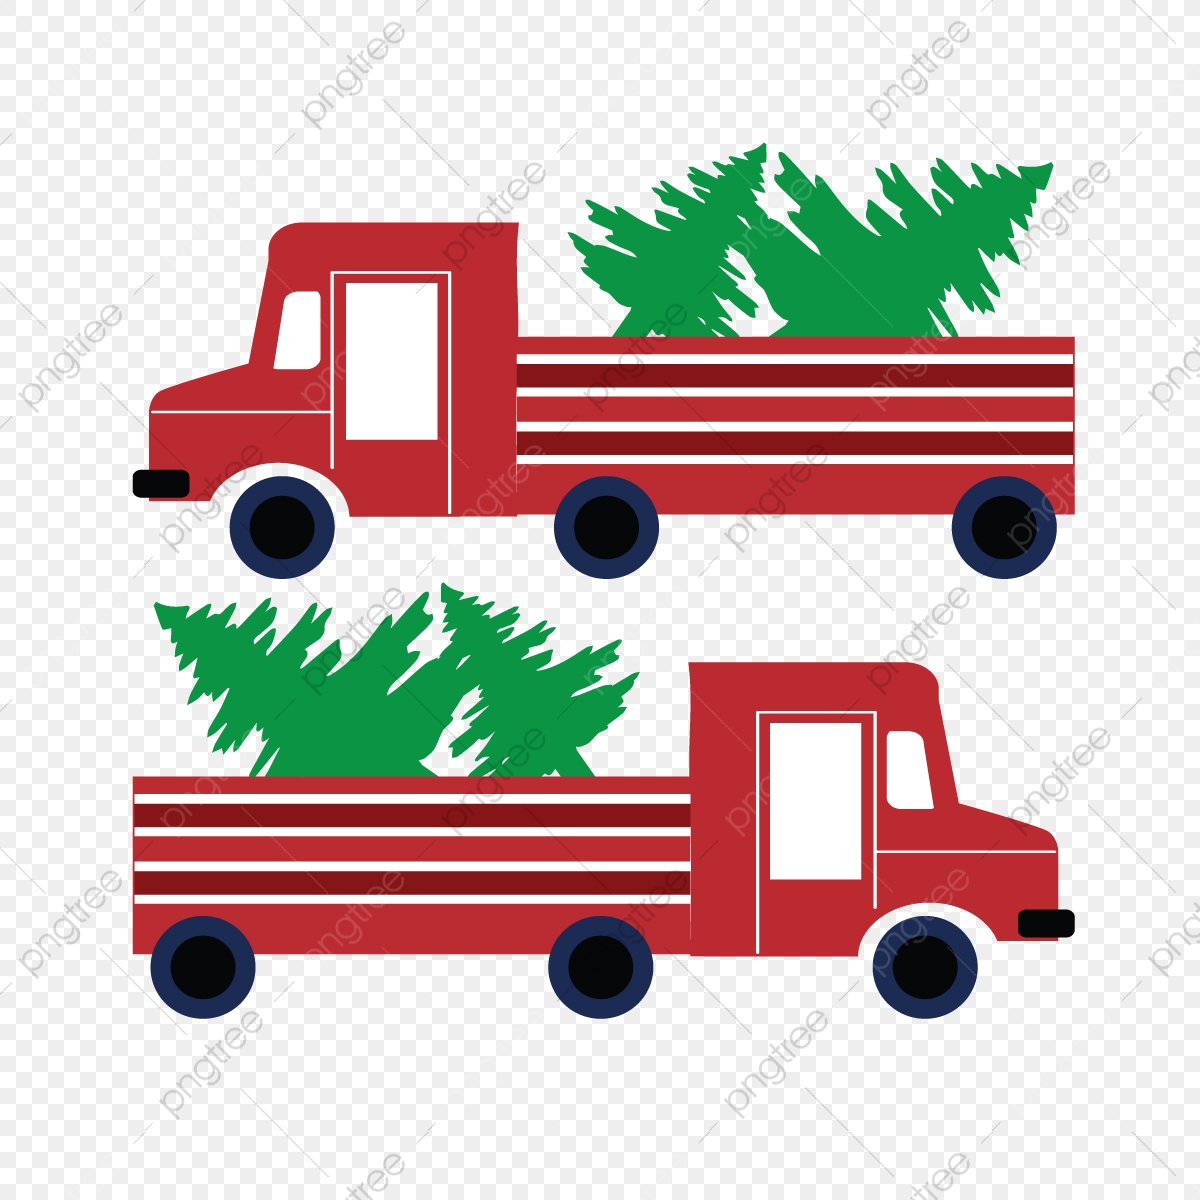 Svg Red Truck Full Of Christmas Trees Svg Red Van Green Christmas Tree Png And Vector With Transparent Background For Free Download